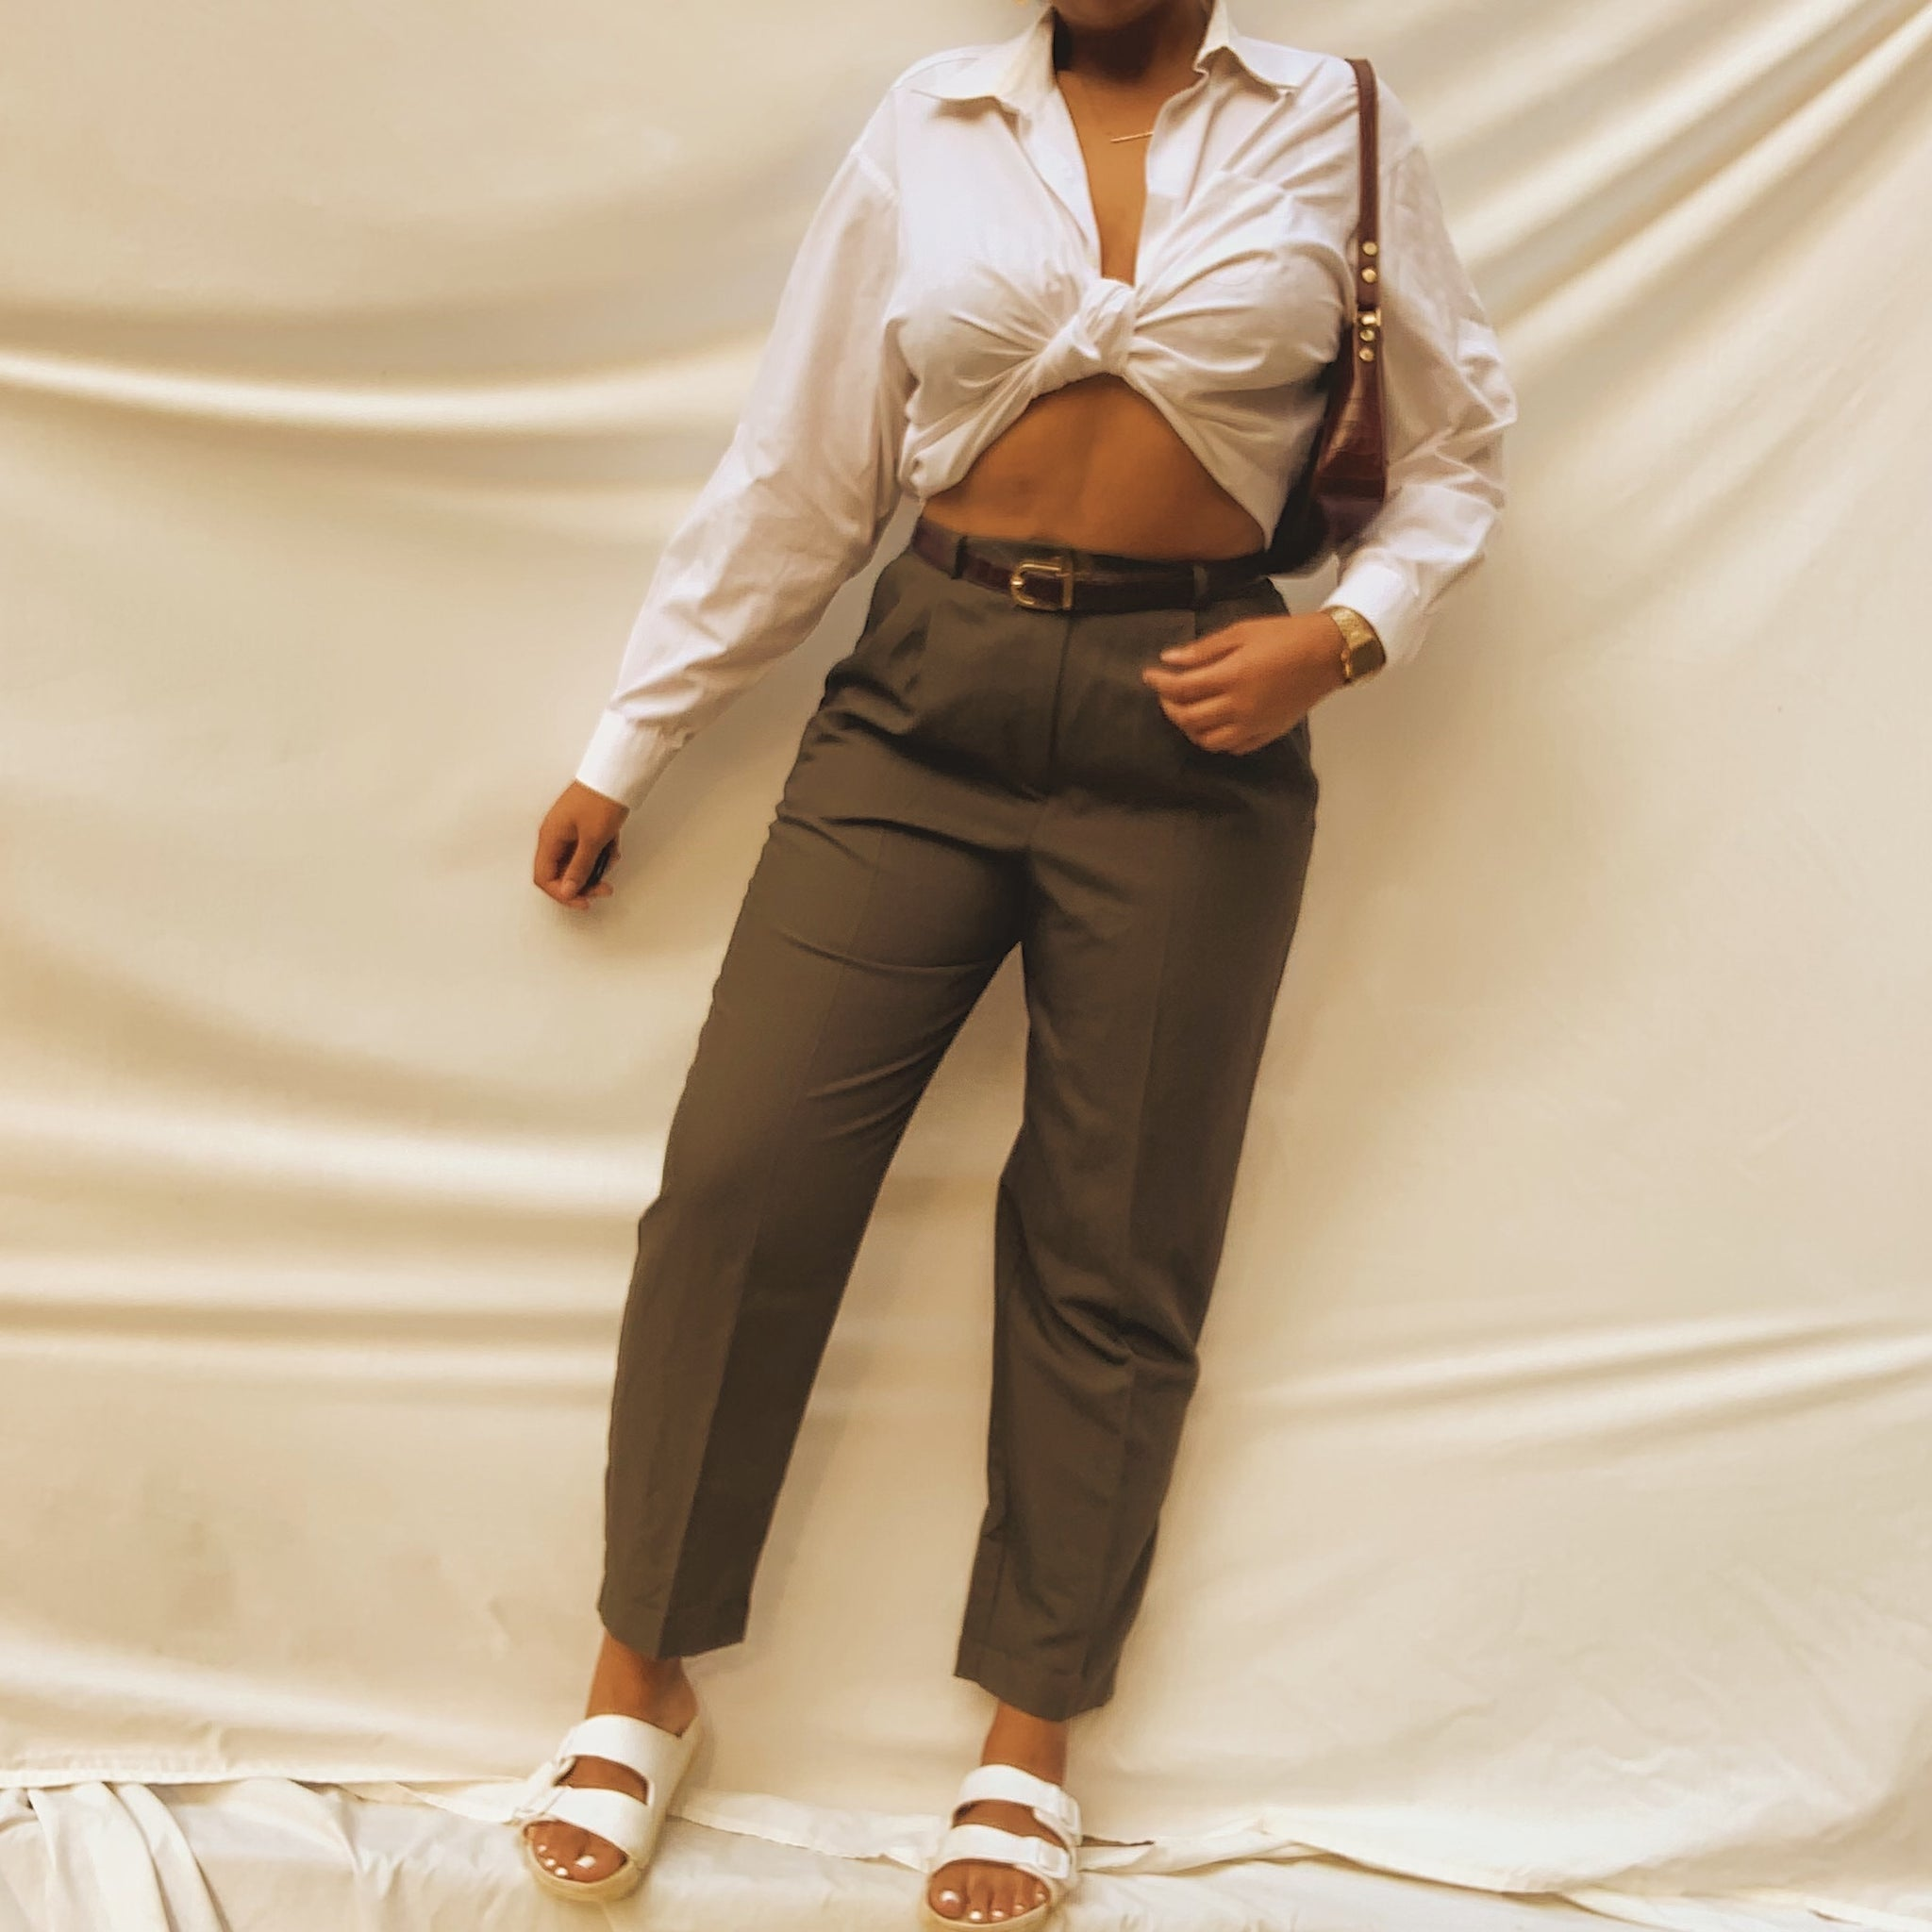 'Kameron' Olive Green High-waisted Pant (L/XL/12)